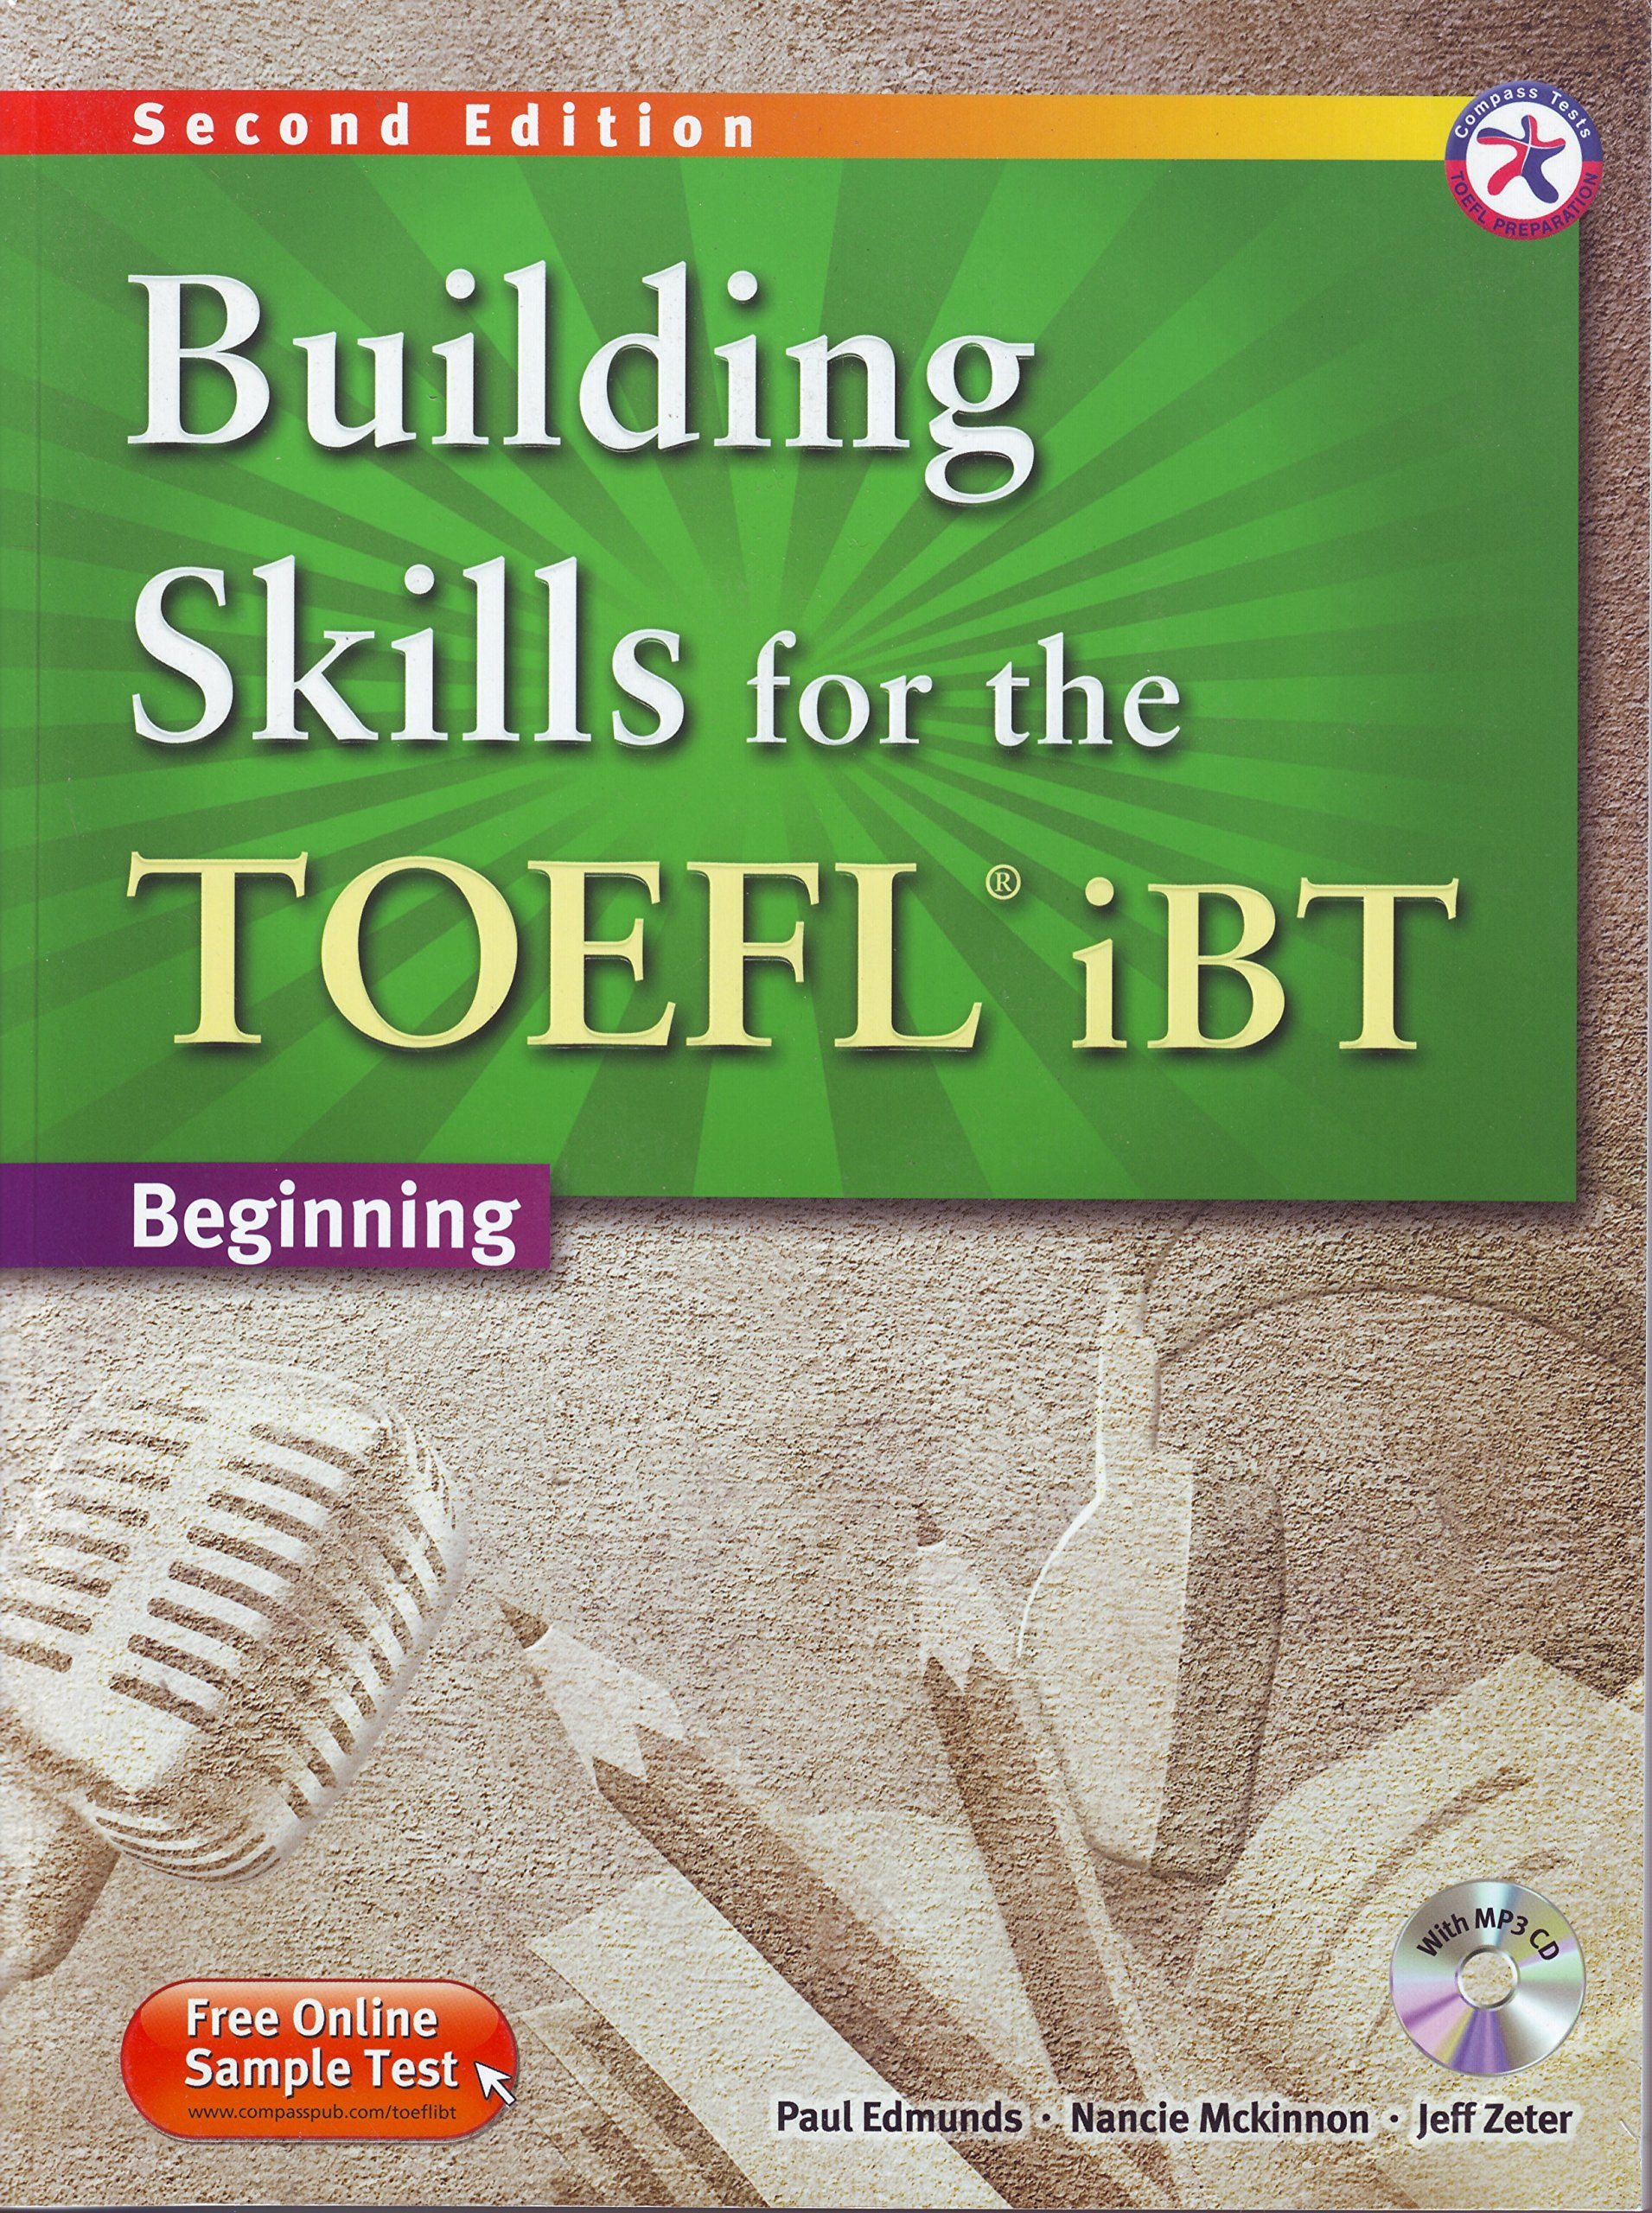 Building Skills for the TOEFL iBT, 2nd Edition Beginning Combined Book & MP3 CD by Compass Publishing